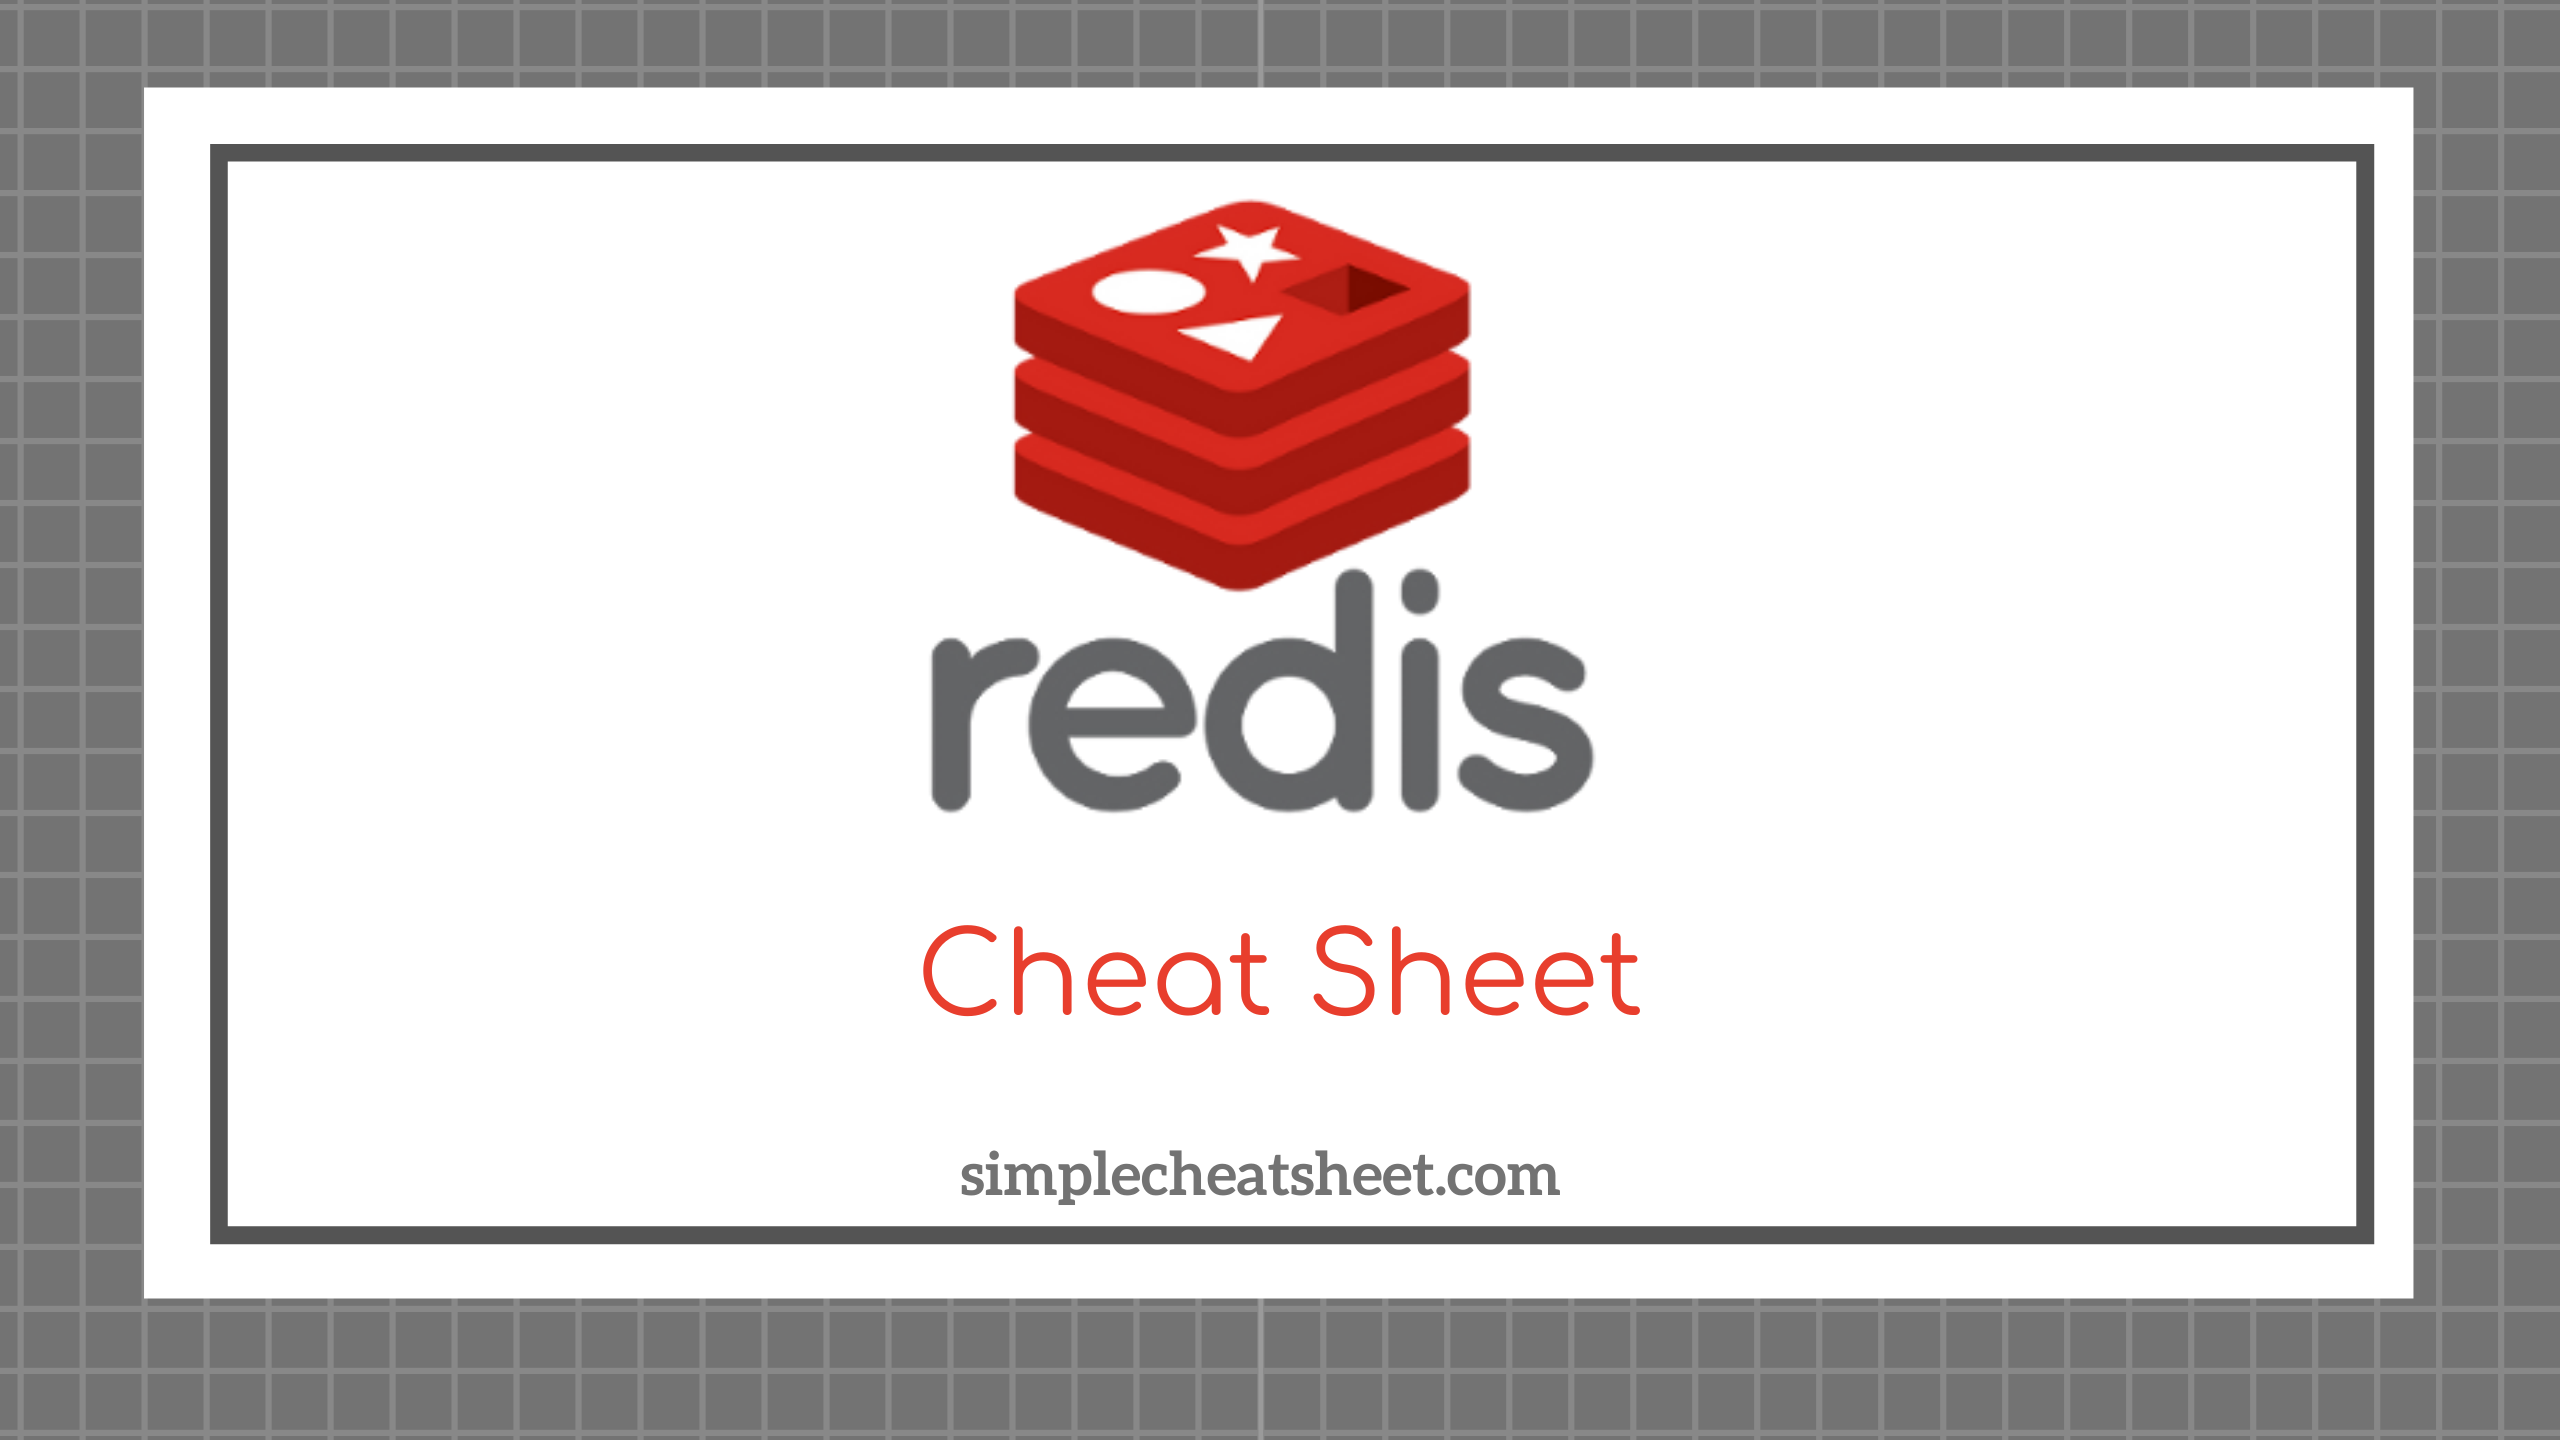 Redis Cheat Sheet